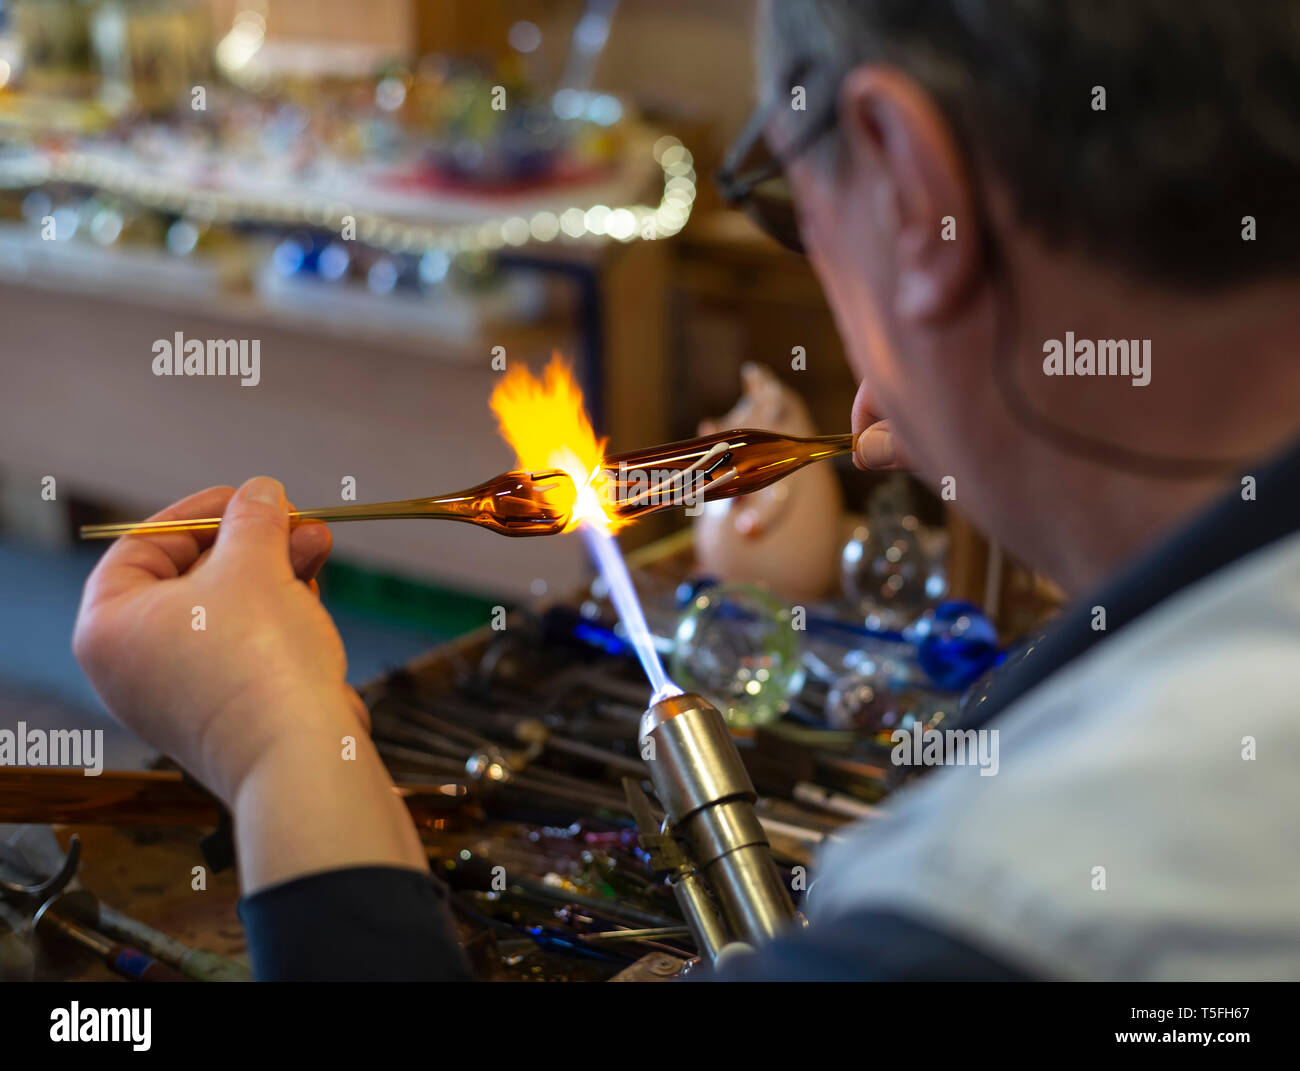 Glass blower forming melting glass - Stock Image